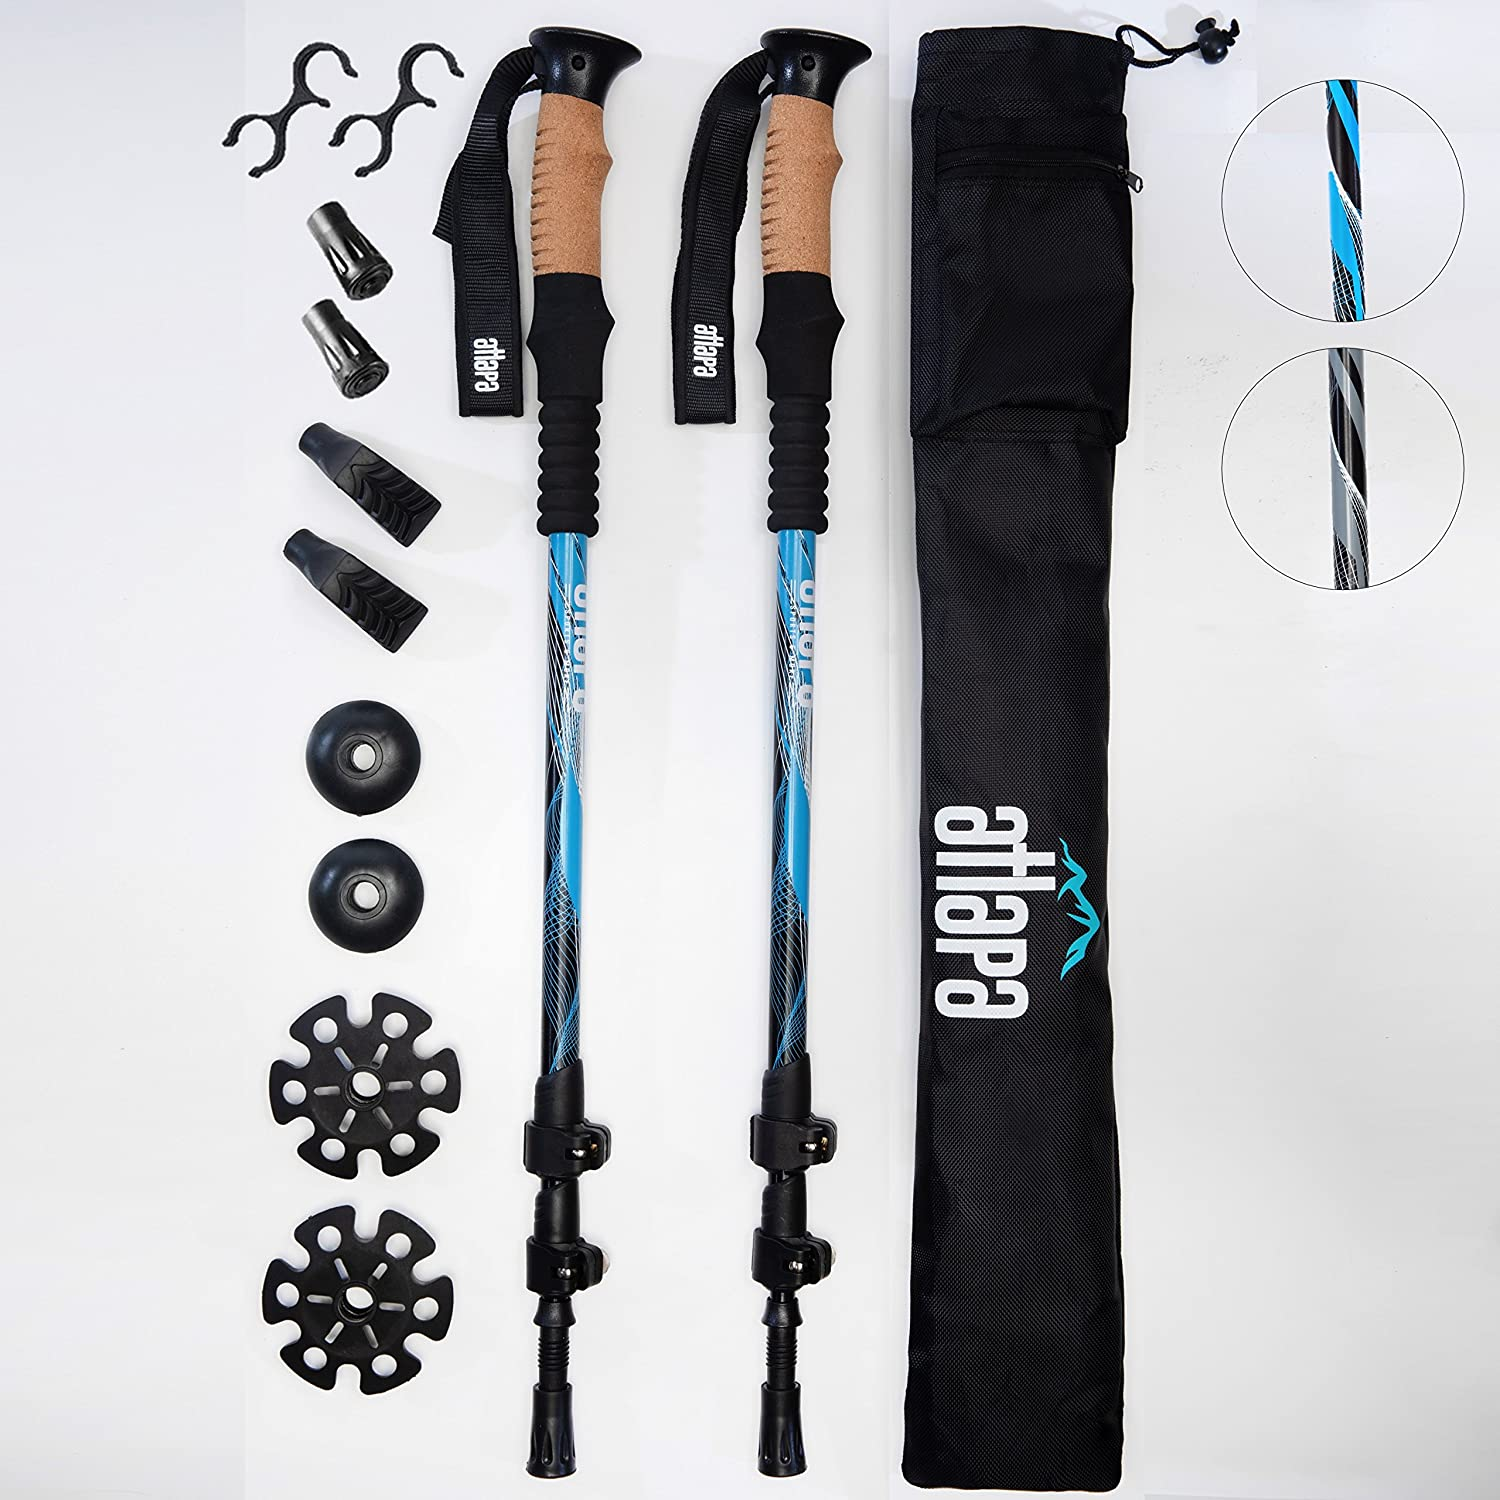 Atlapa Sports Grey Trekking Poles with Cork Grips 2 pcs of Strong Adjustable Flip Lock Lightweight 7075 Aluminum Collapsible Cork Trekking Pole for Hiking Trekking Hunting Includes Tips and Bag